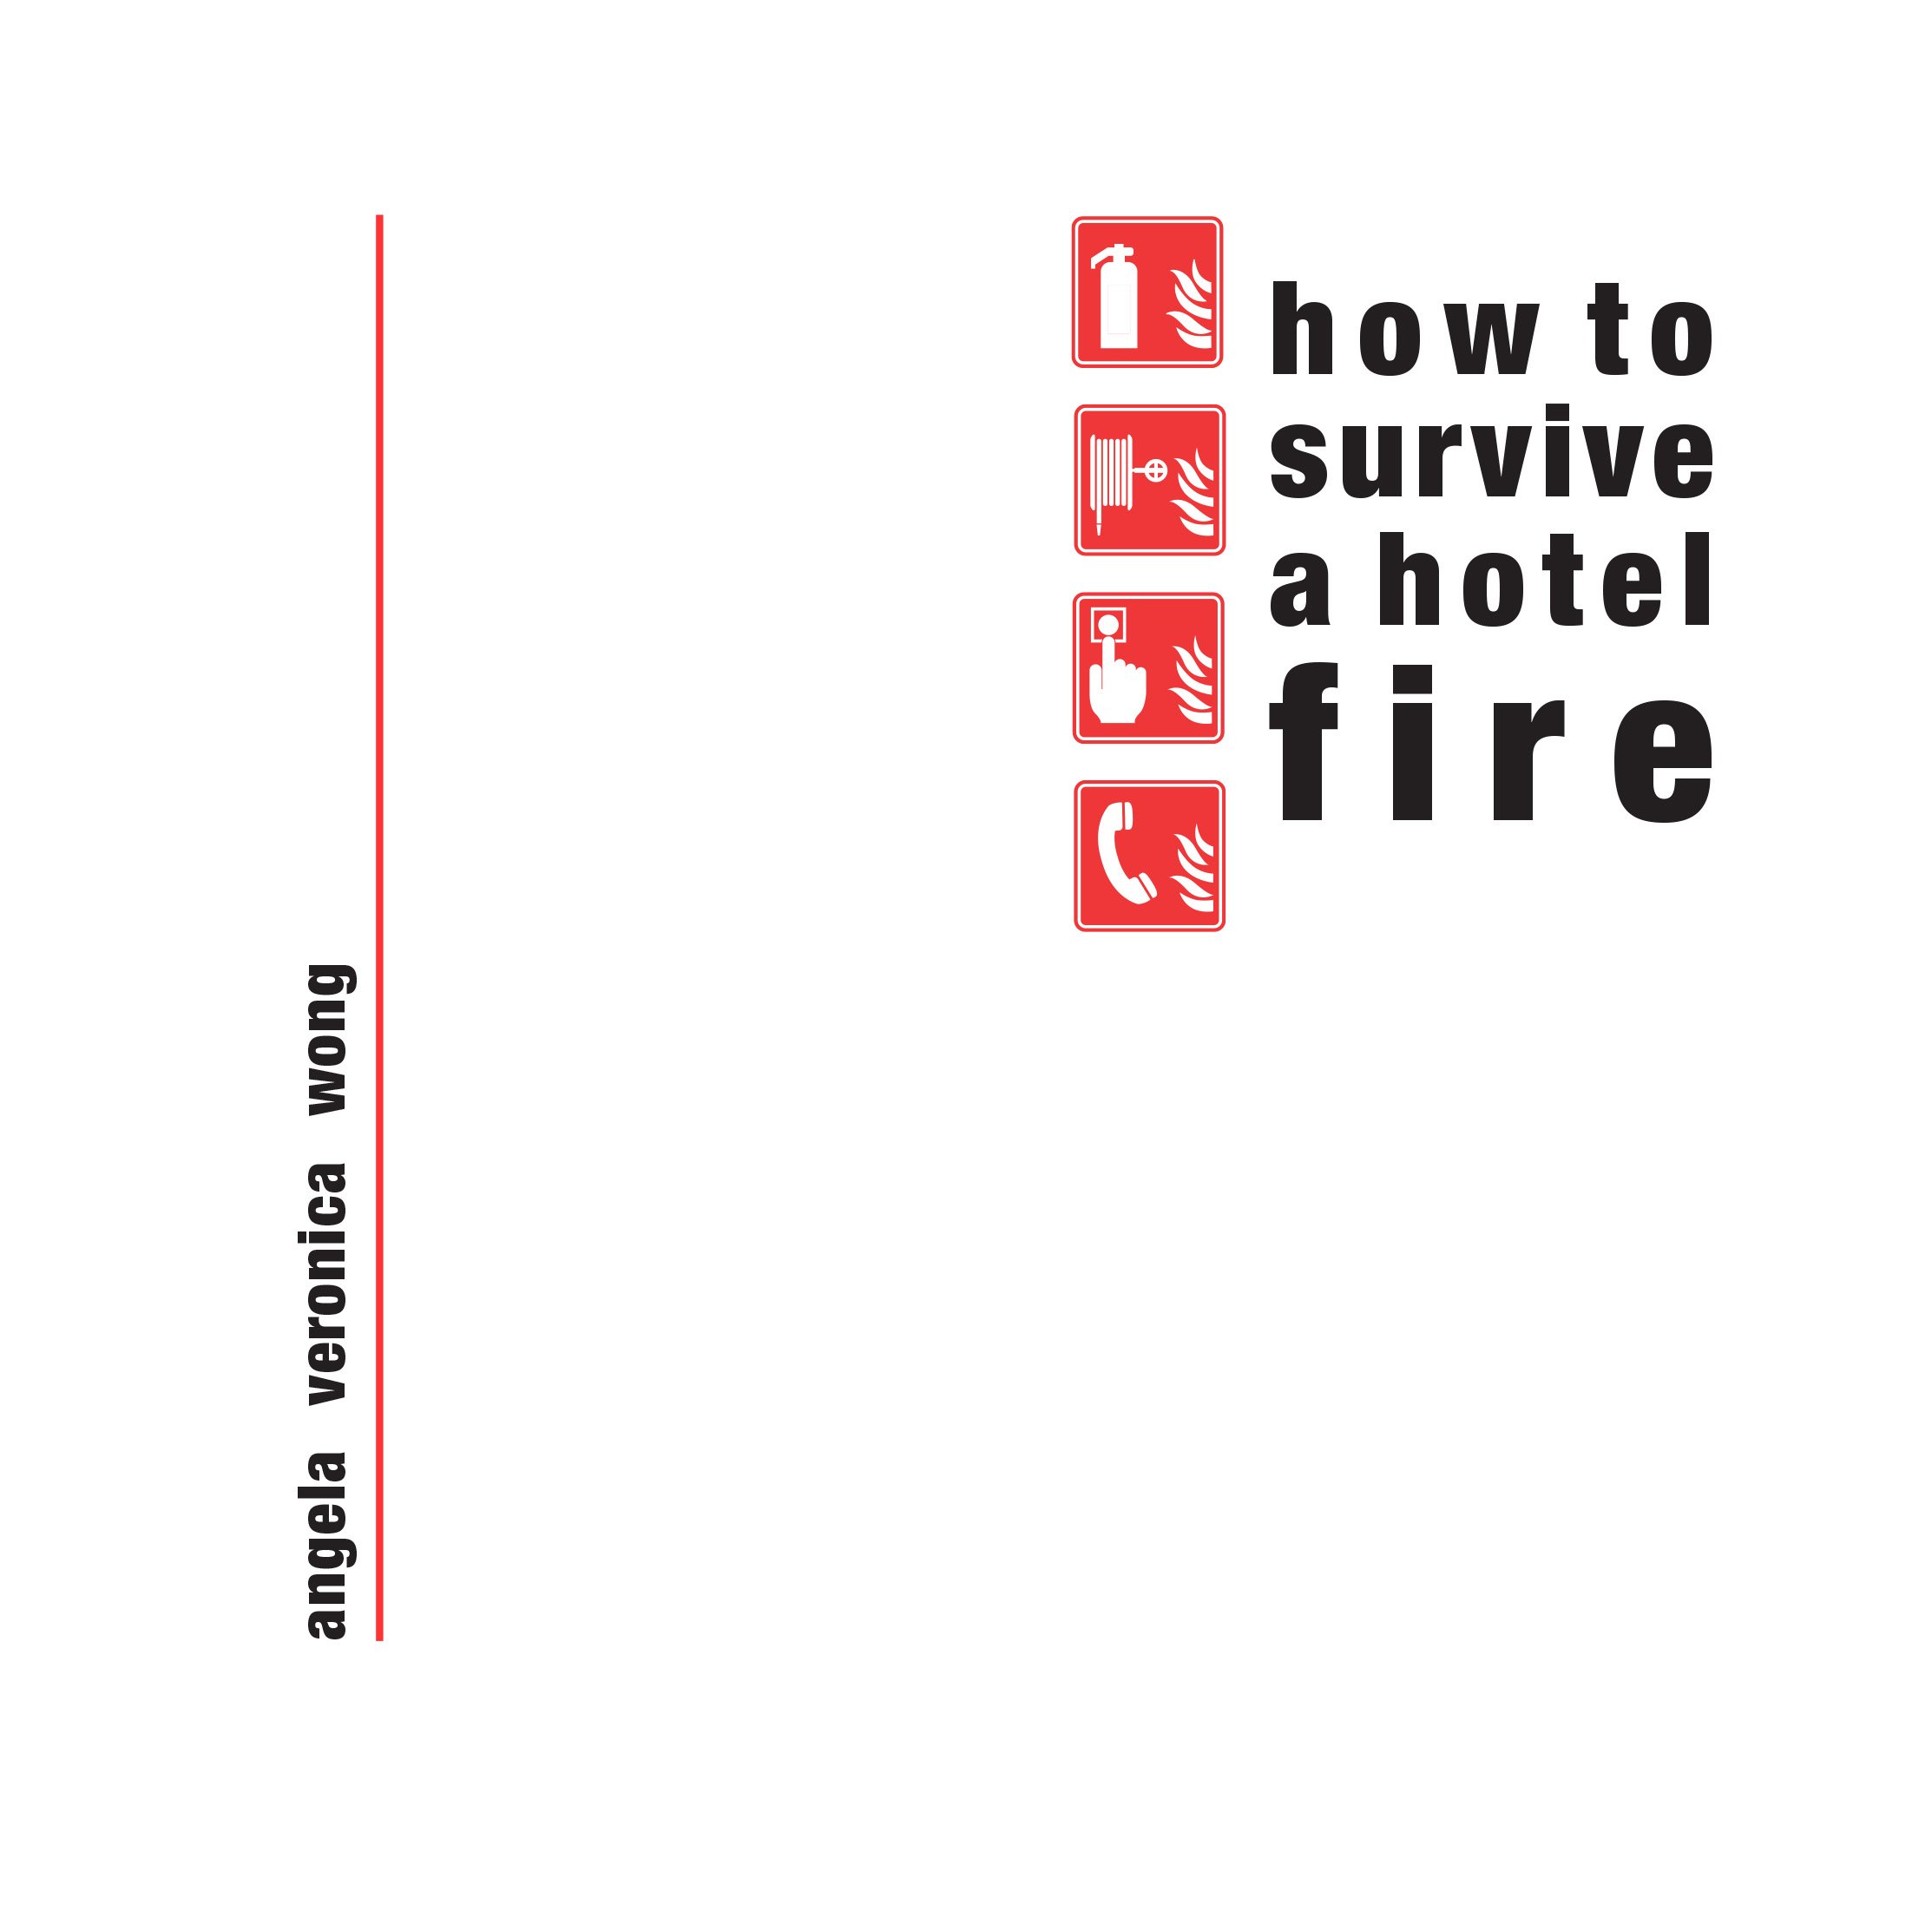 how to survive a hotel fire